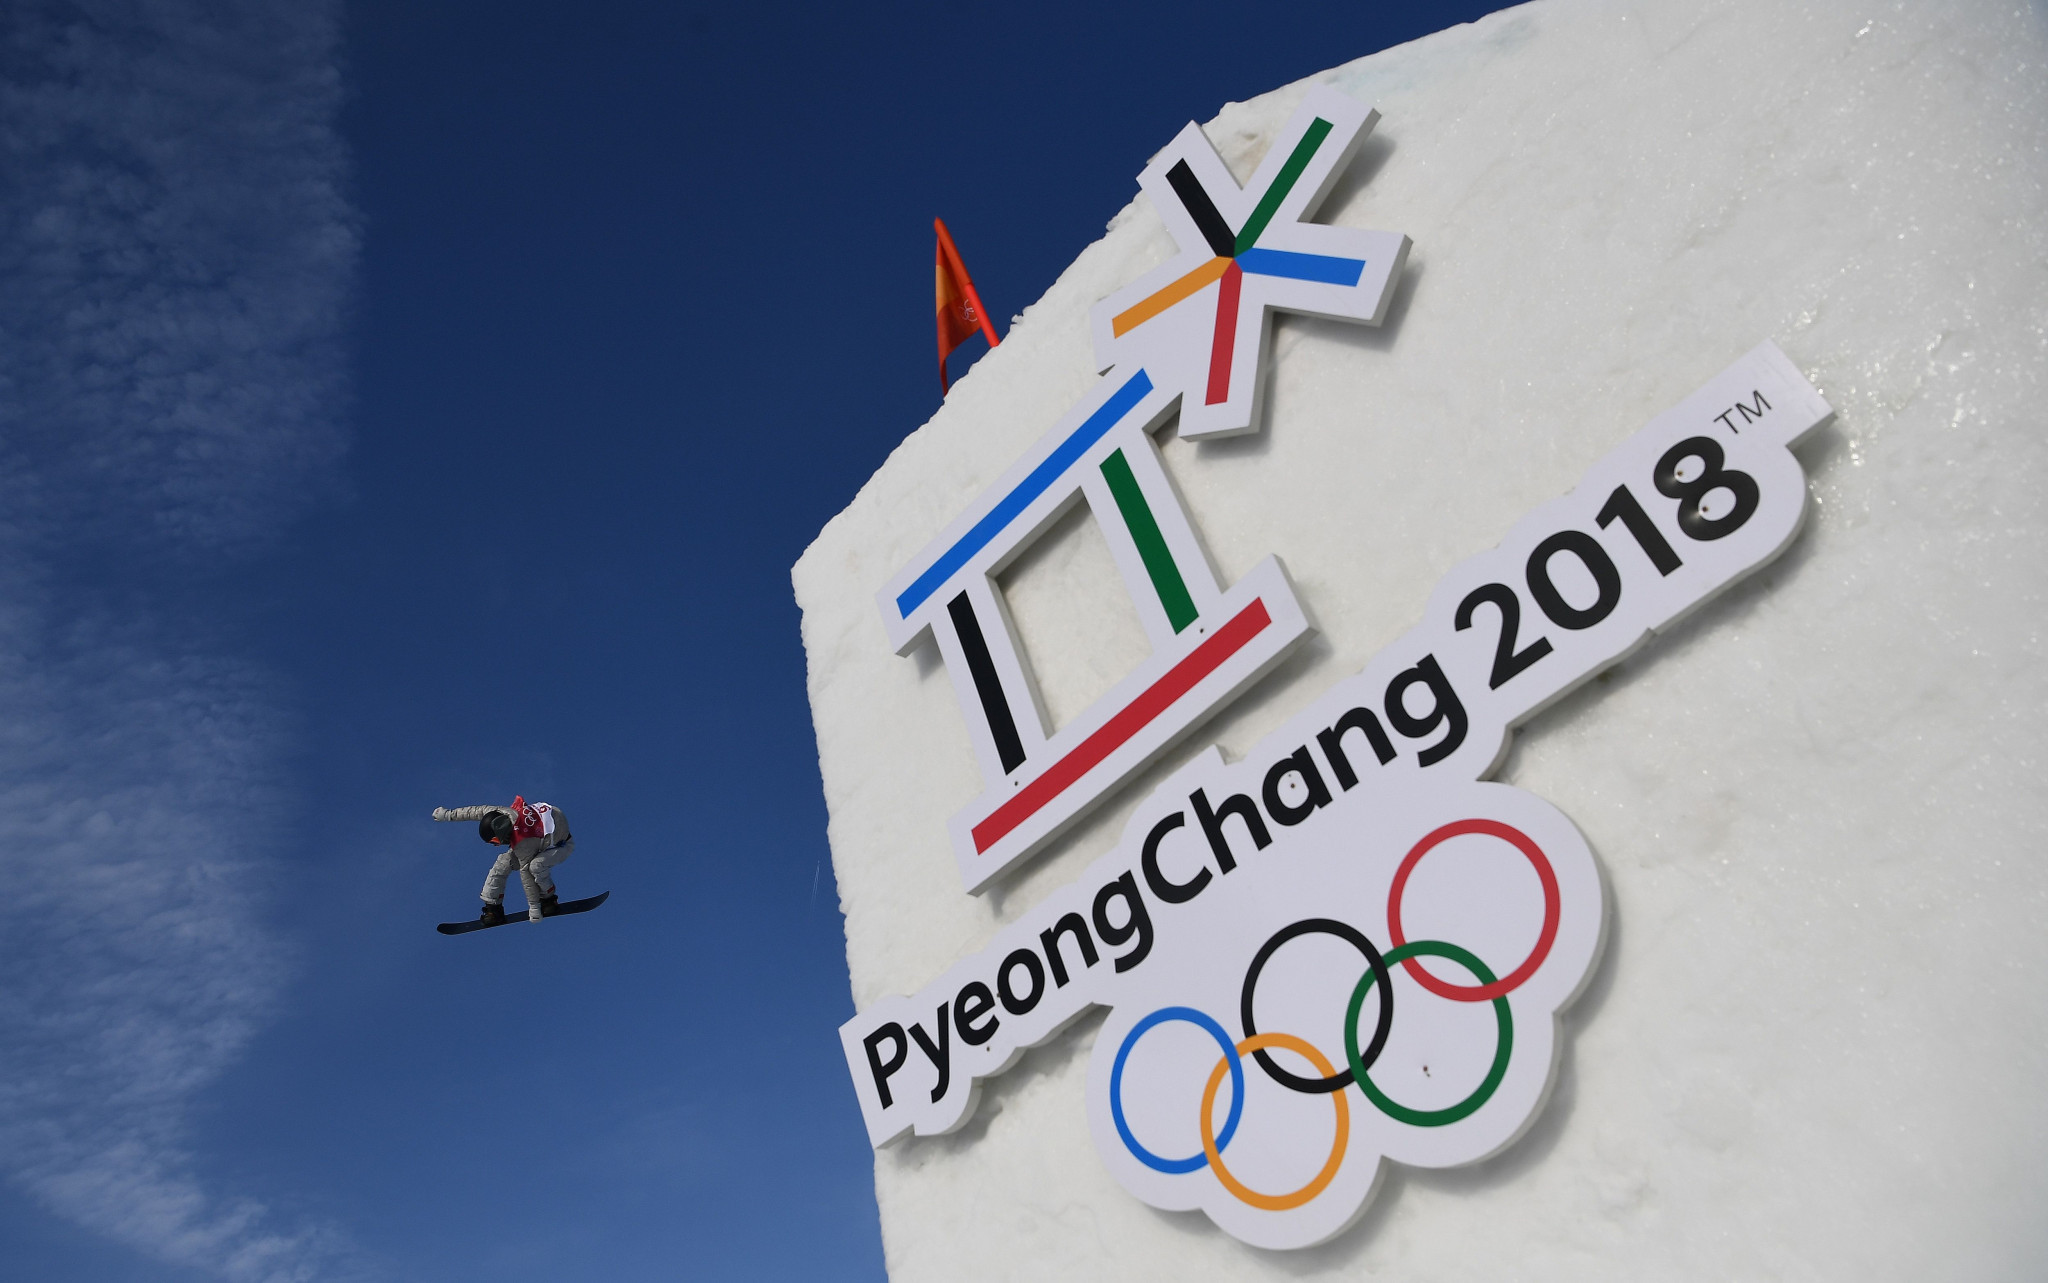 Pyeongchang emerges as potential host for future Winter Universiade